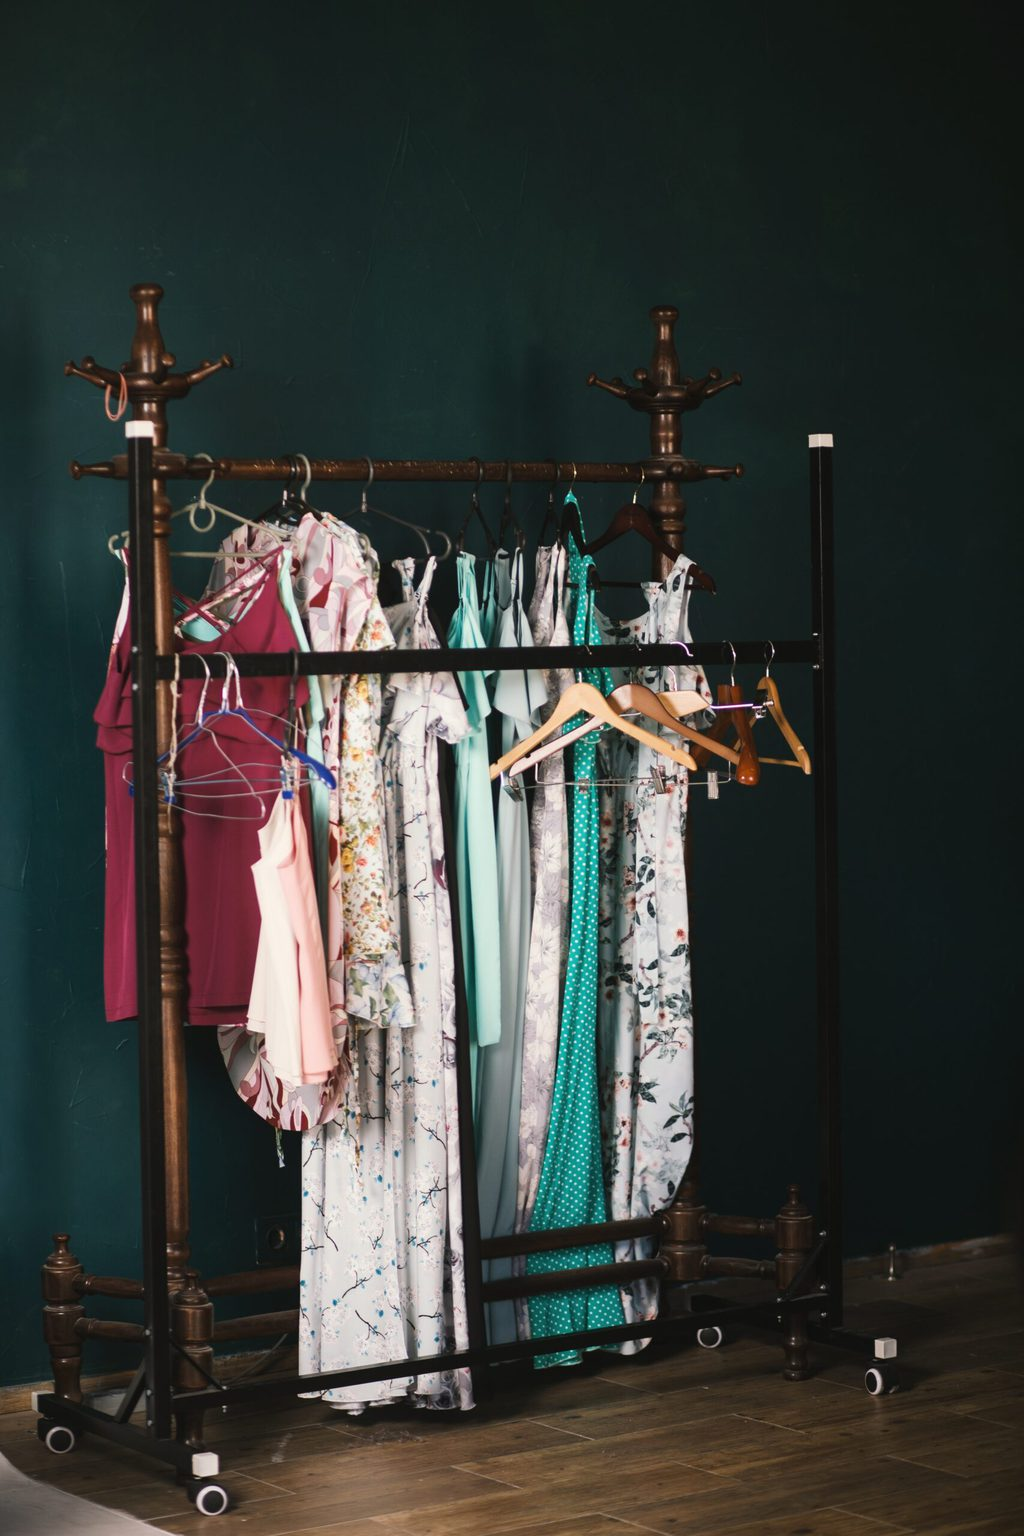 Stock photo of a clothing rack